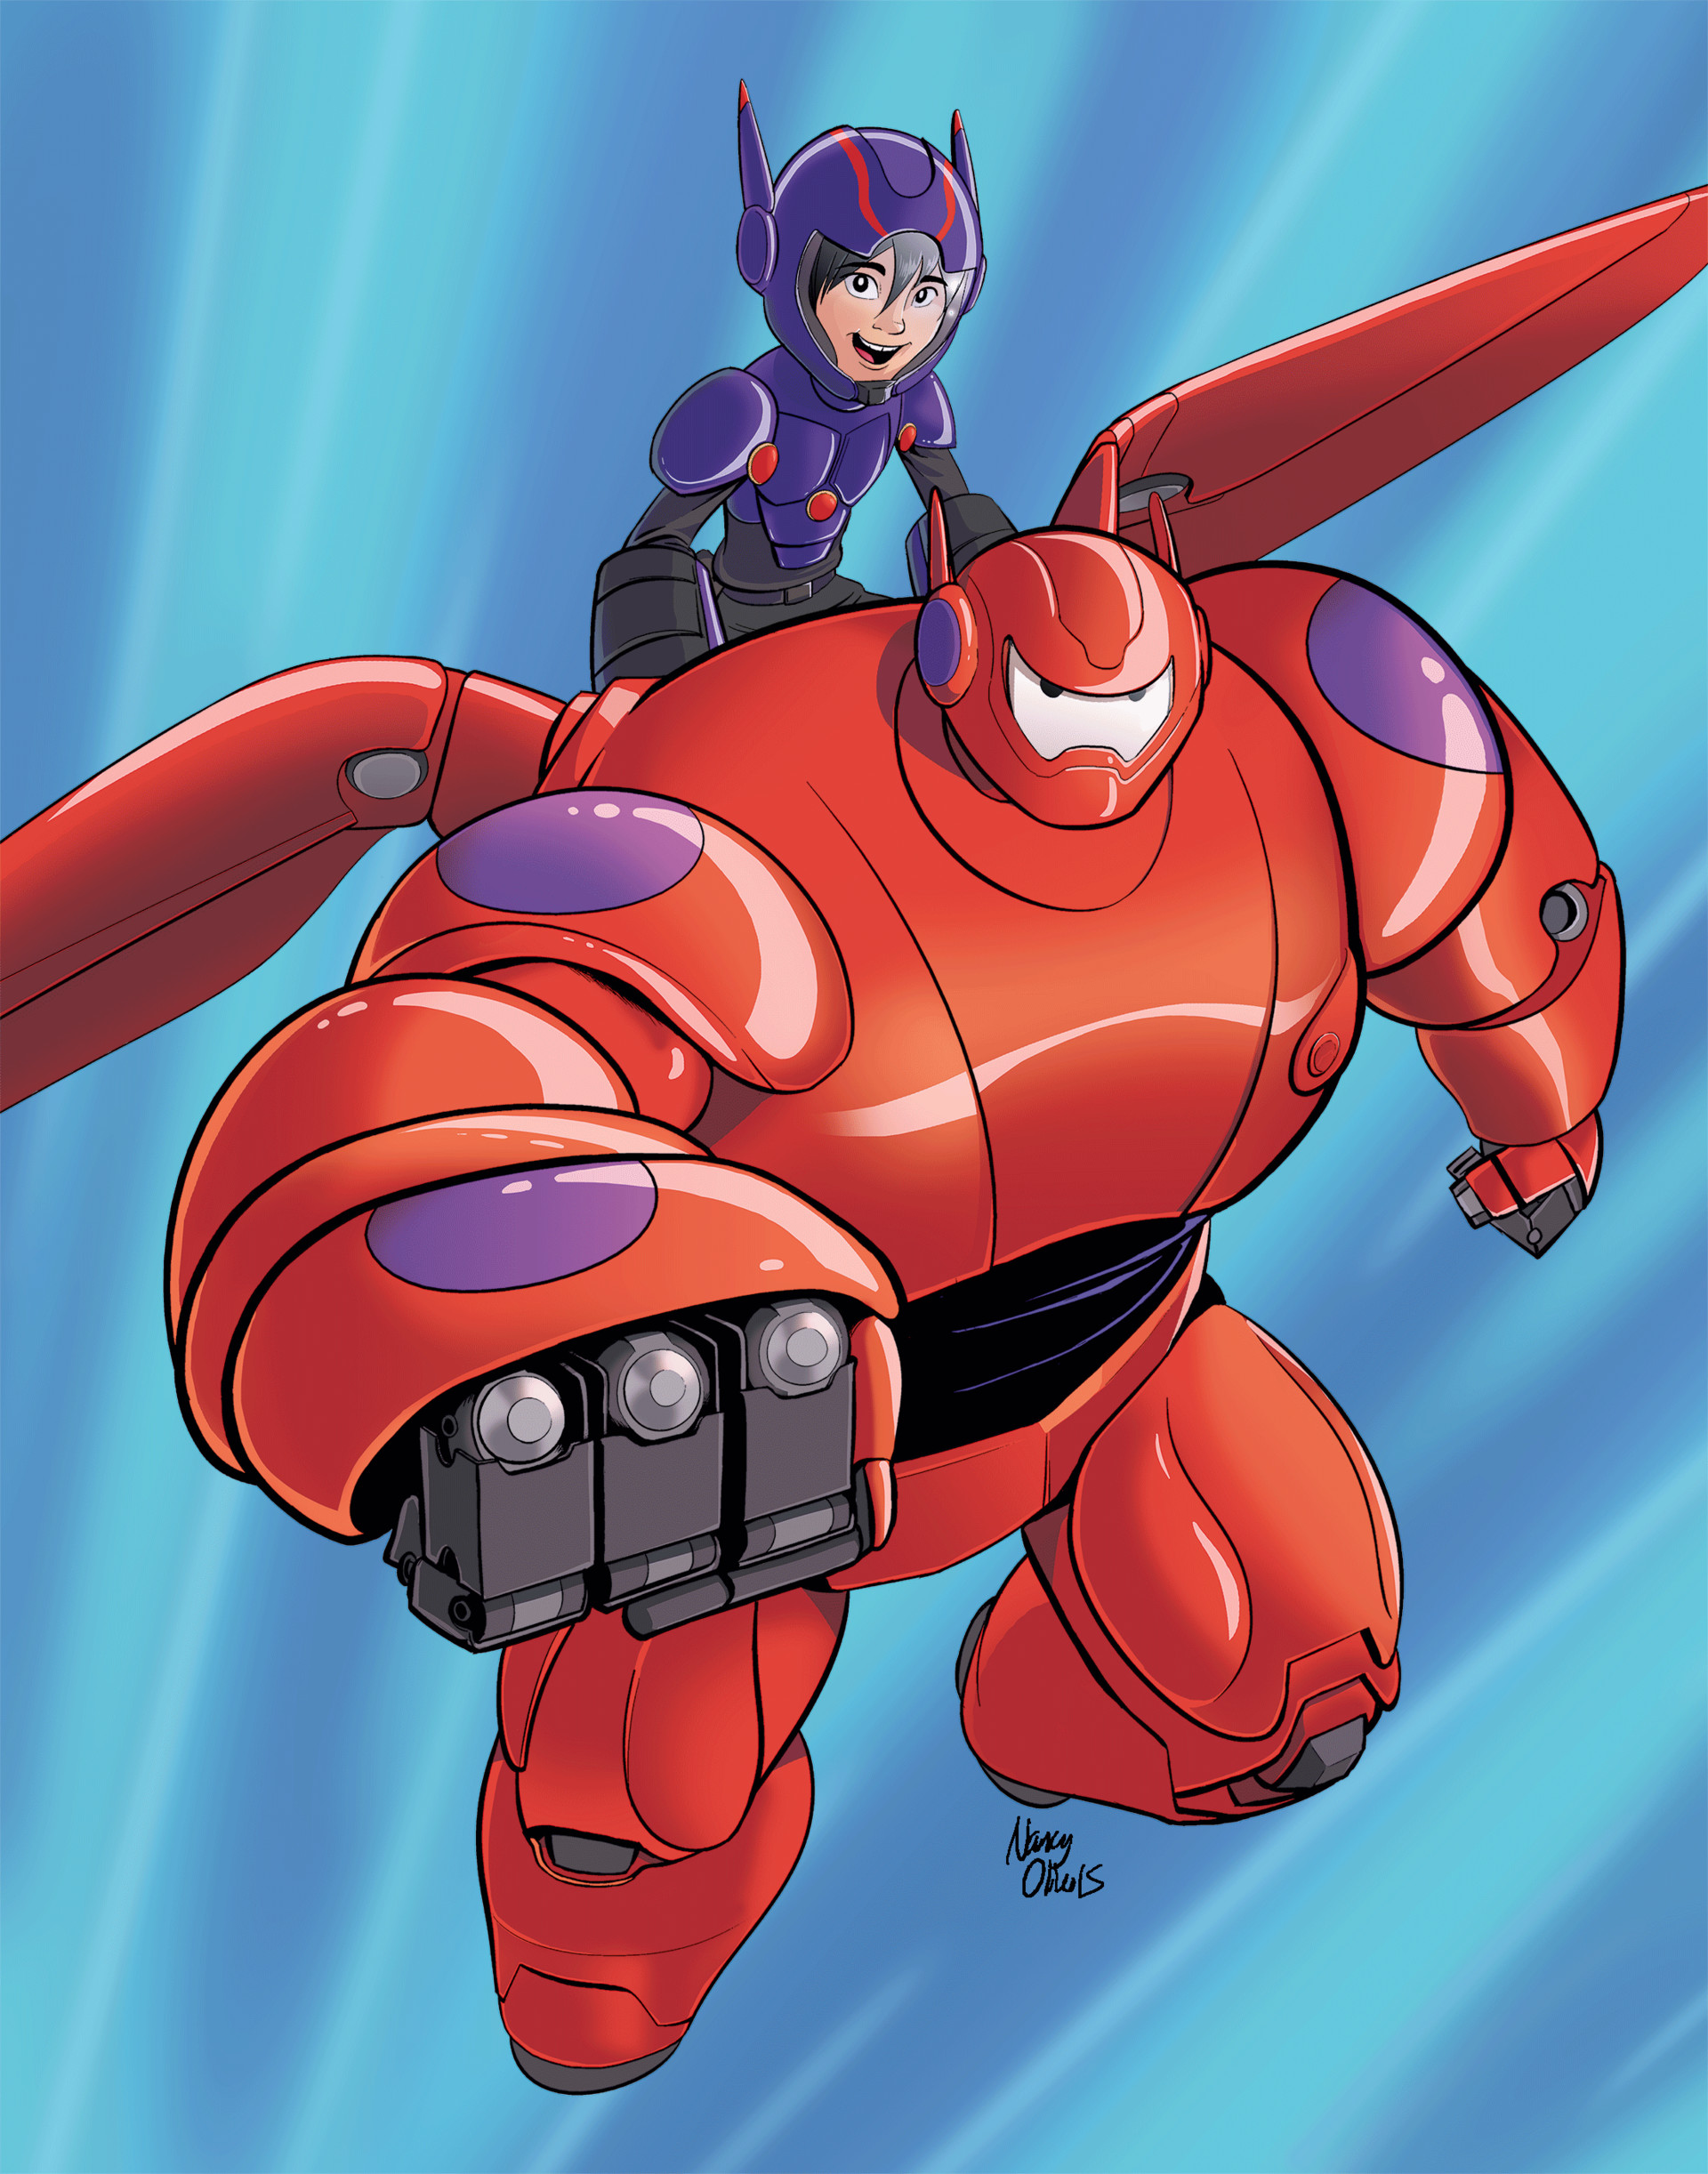 ArtStation - Big Hero 6 poster, Nancy Olivo | Big hero 6 ...